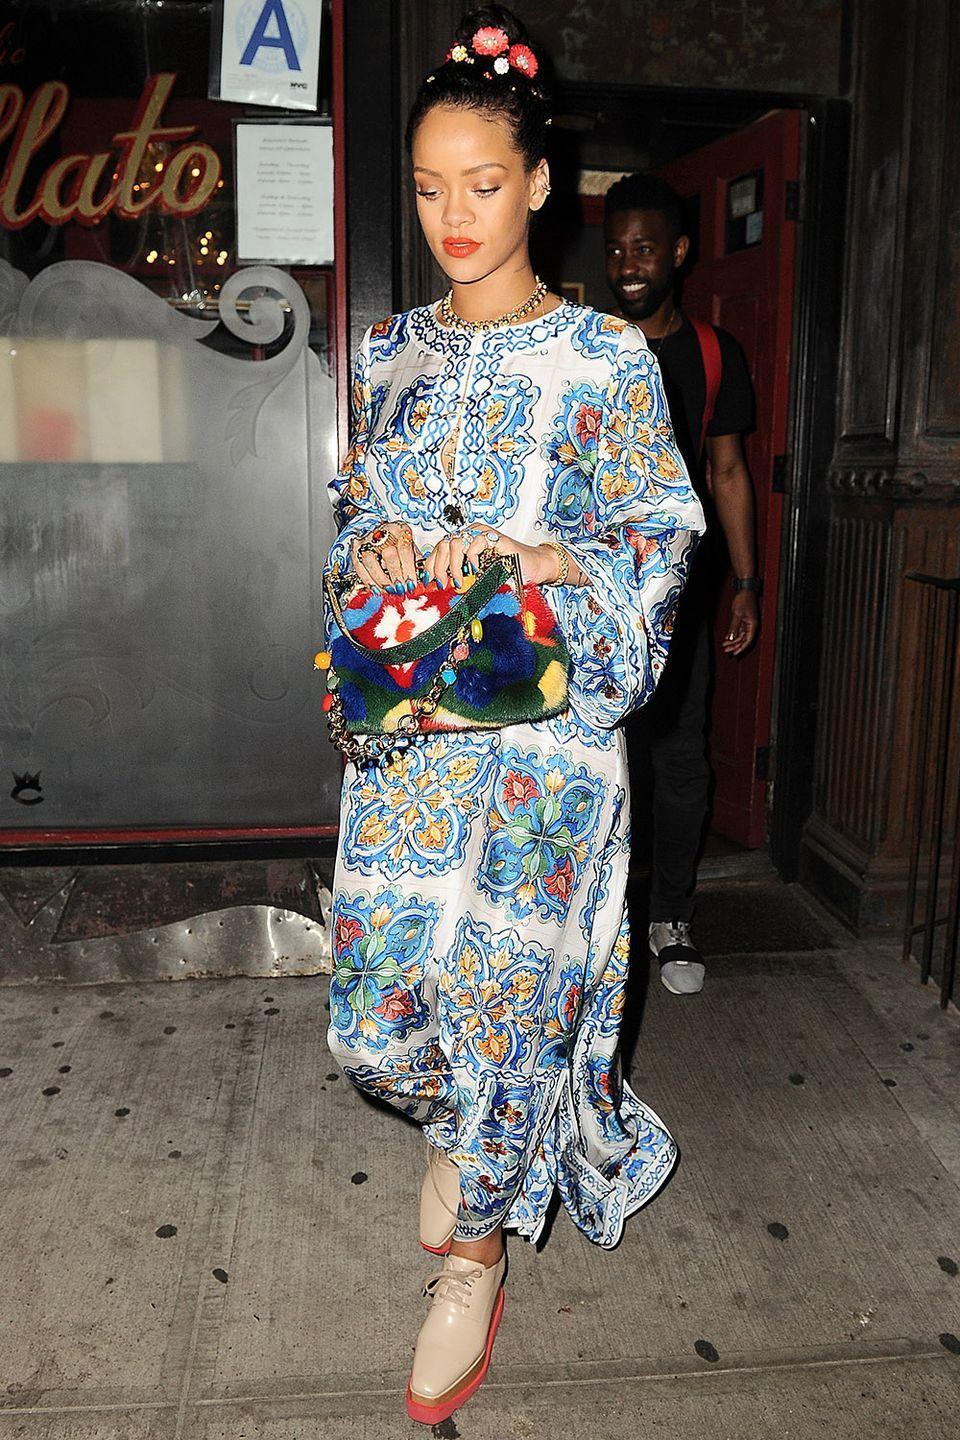 <p>In a Dolce & Gabbana caftan, printed handbag and platform oxfords, topped with some floral accents in her hair</p>